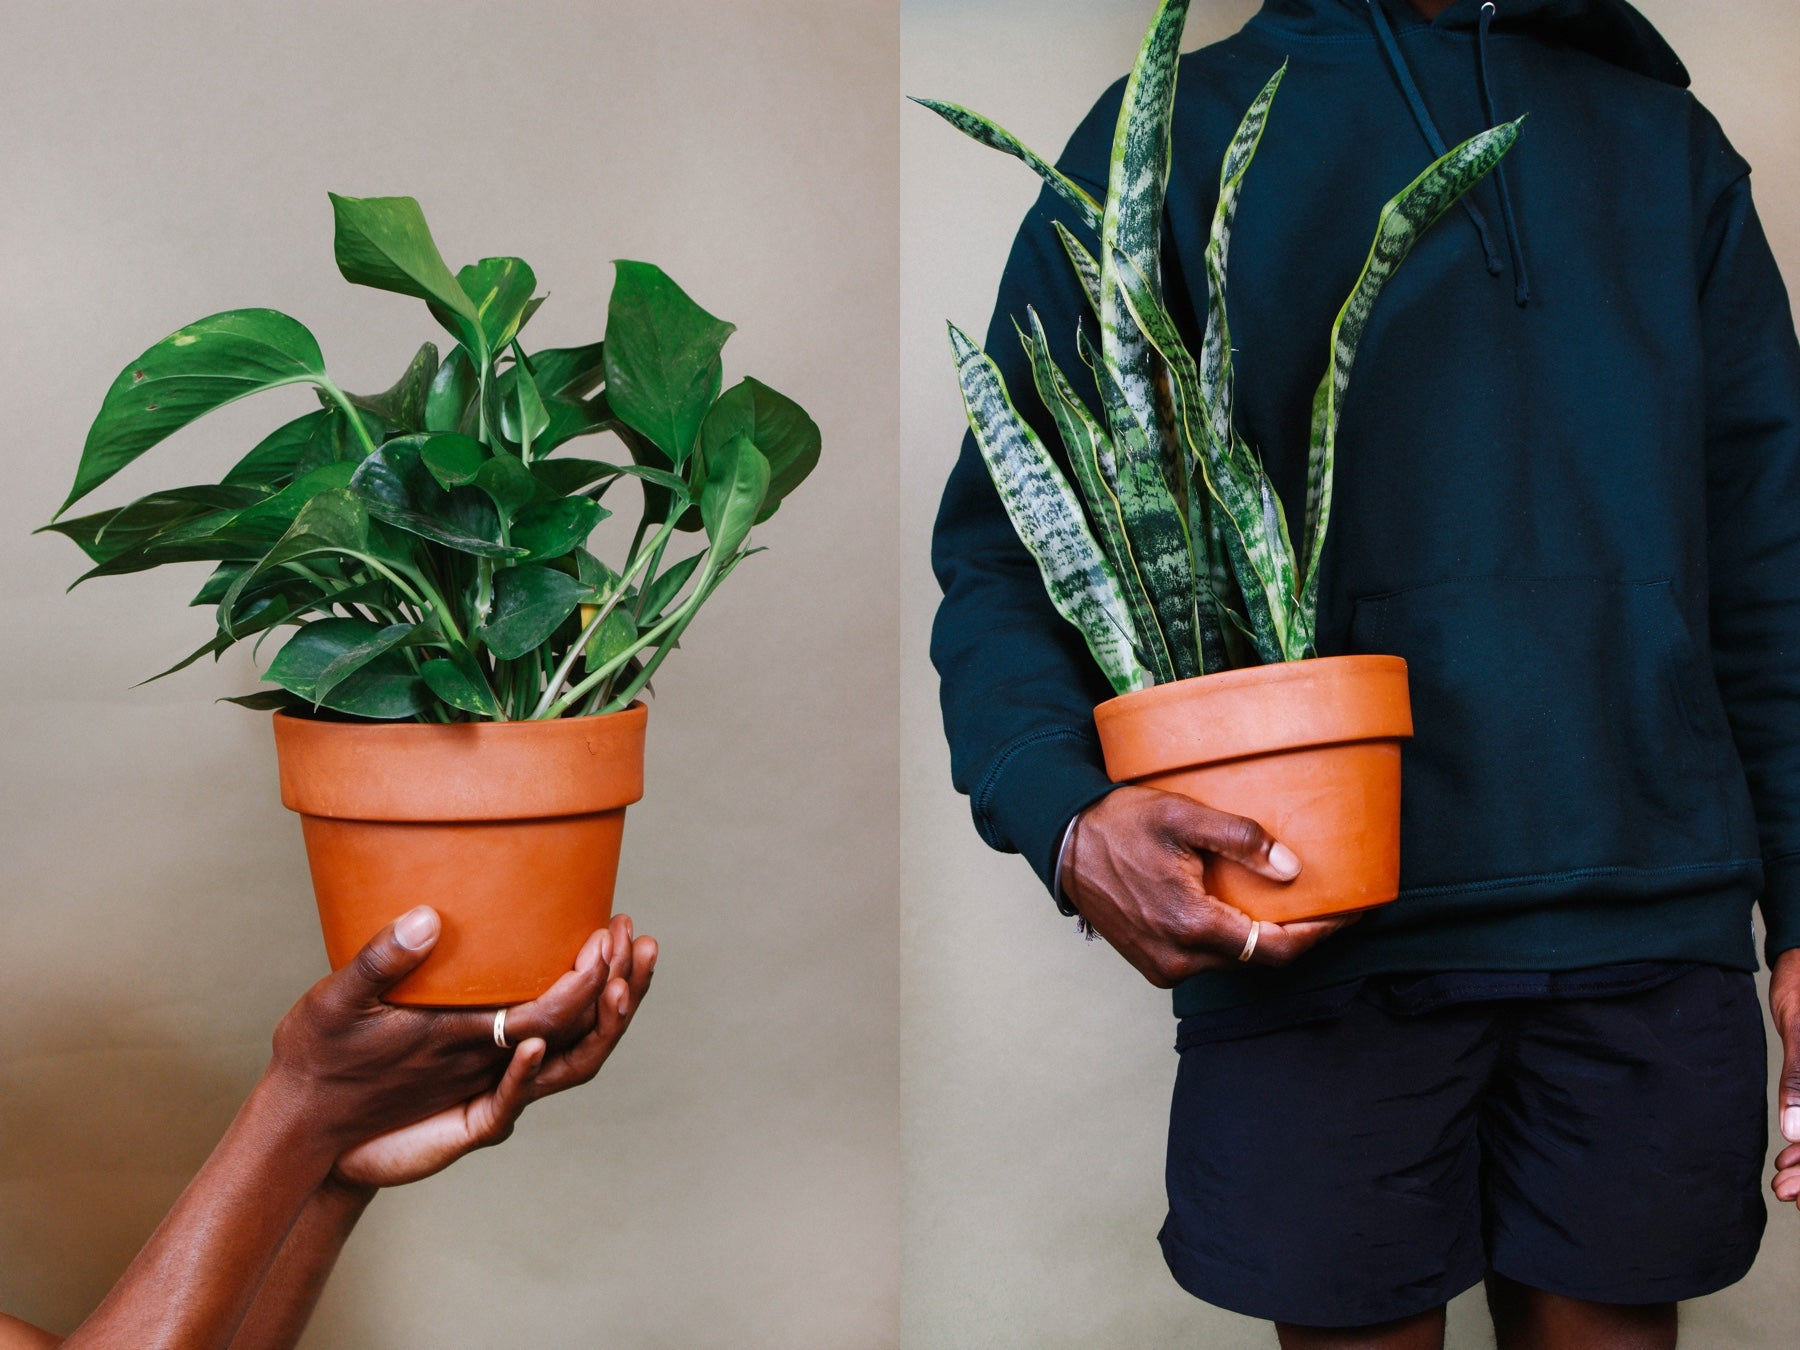 Side by side images of people holding plants in terracotta pots